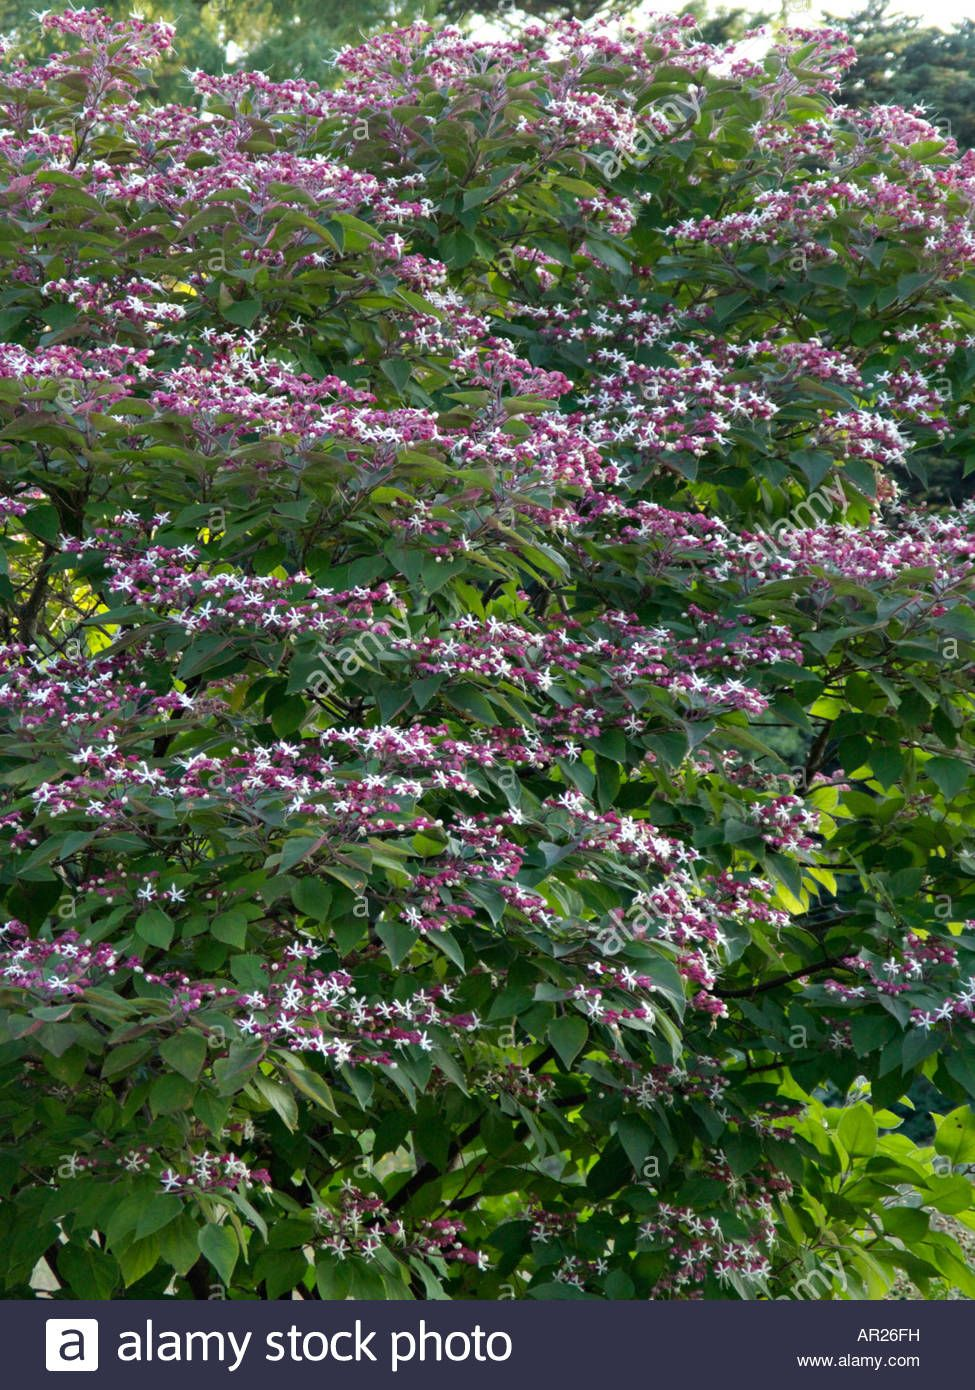 clerodendrum trichotomum var. fargesii | countryside outside